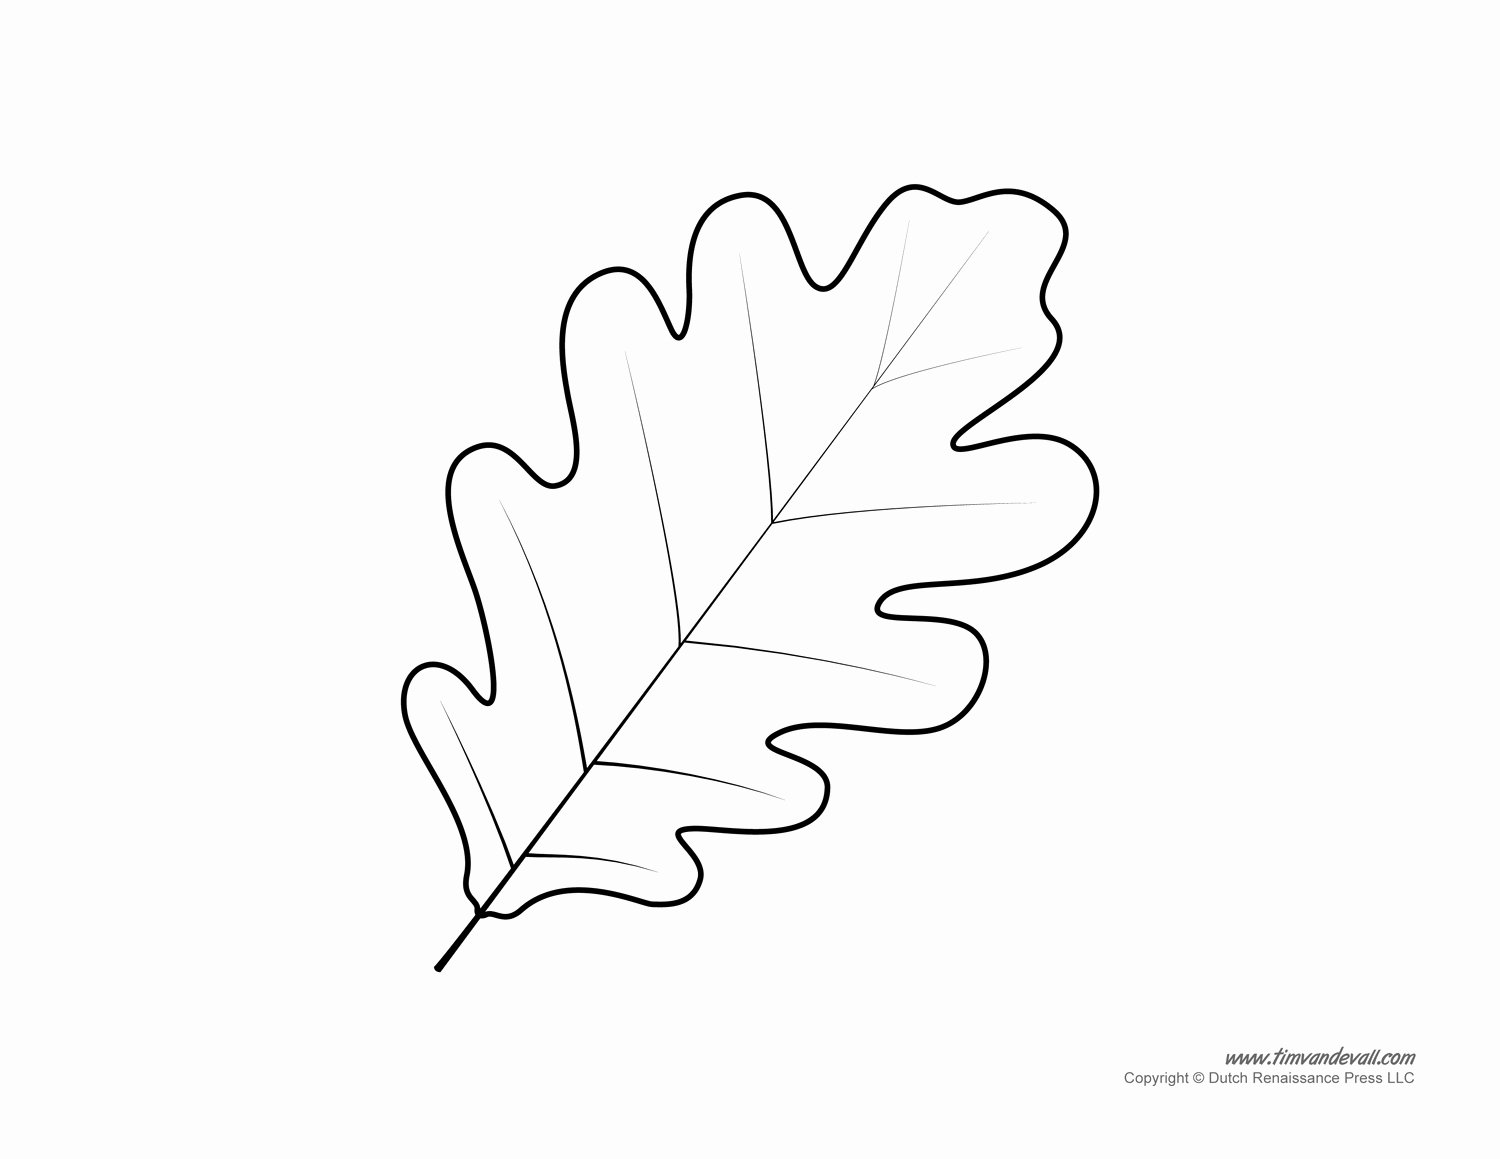 Leaf Template with Lines Best Of Oak Leaf Coloring Page Image Clipart Grig3